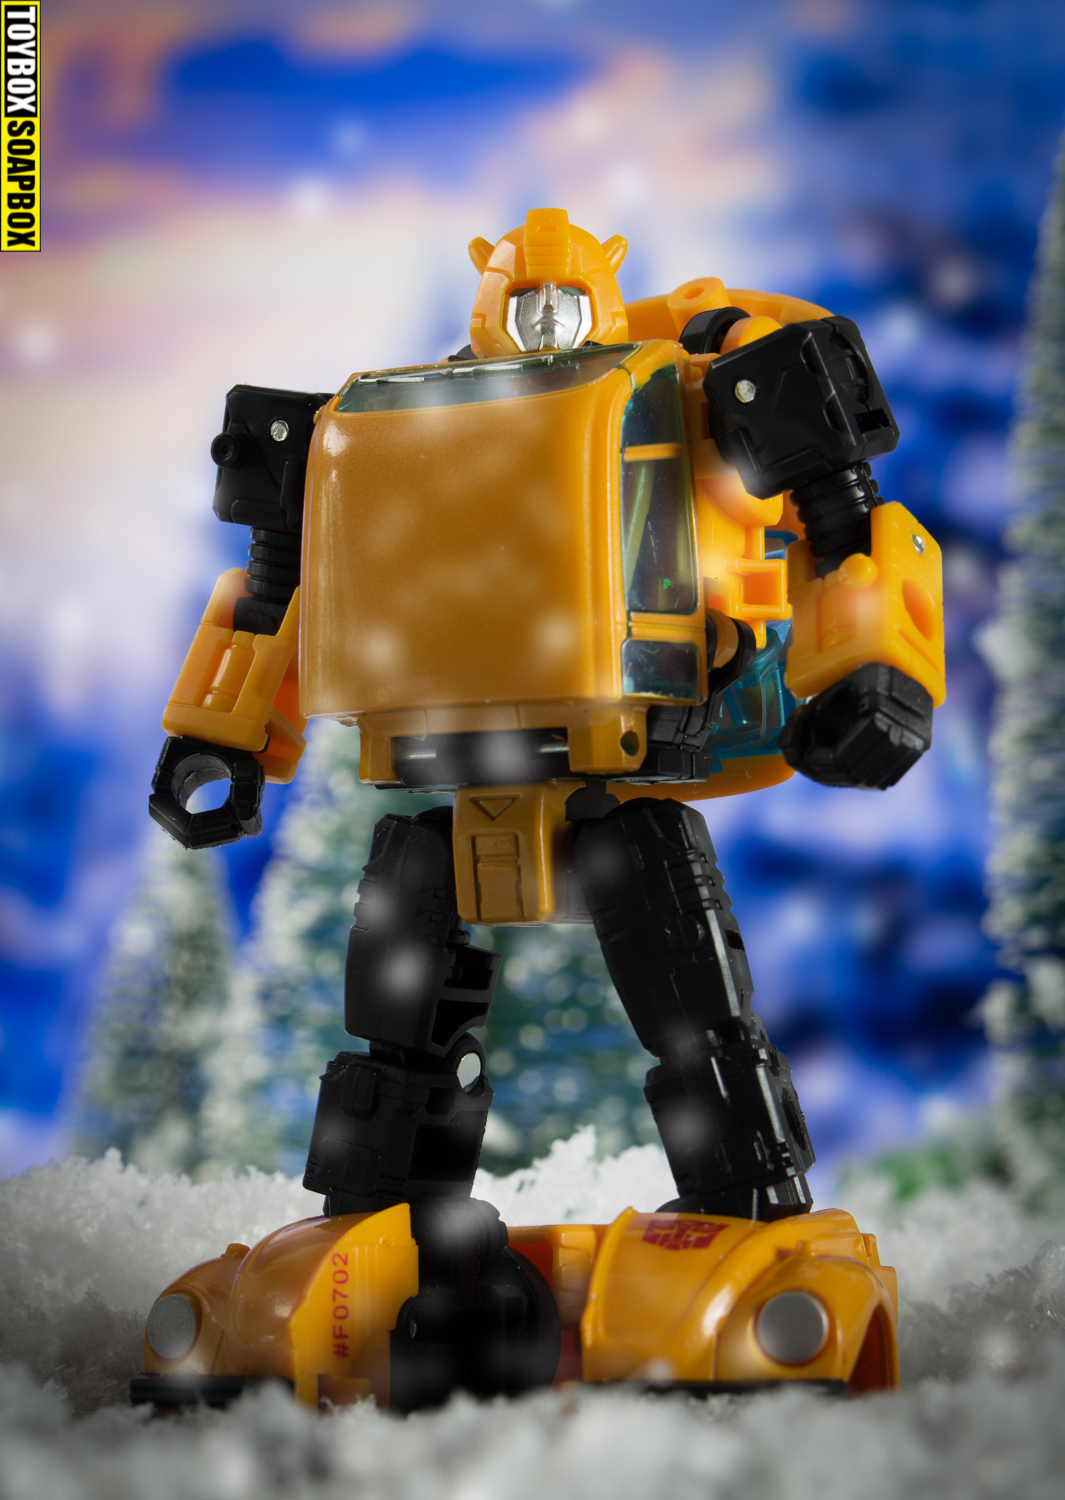 Transformers earthrise bumblebee netflix review snow